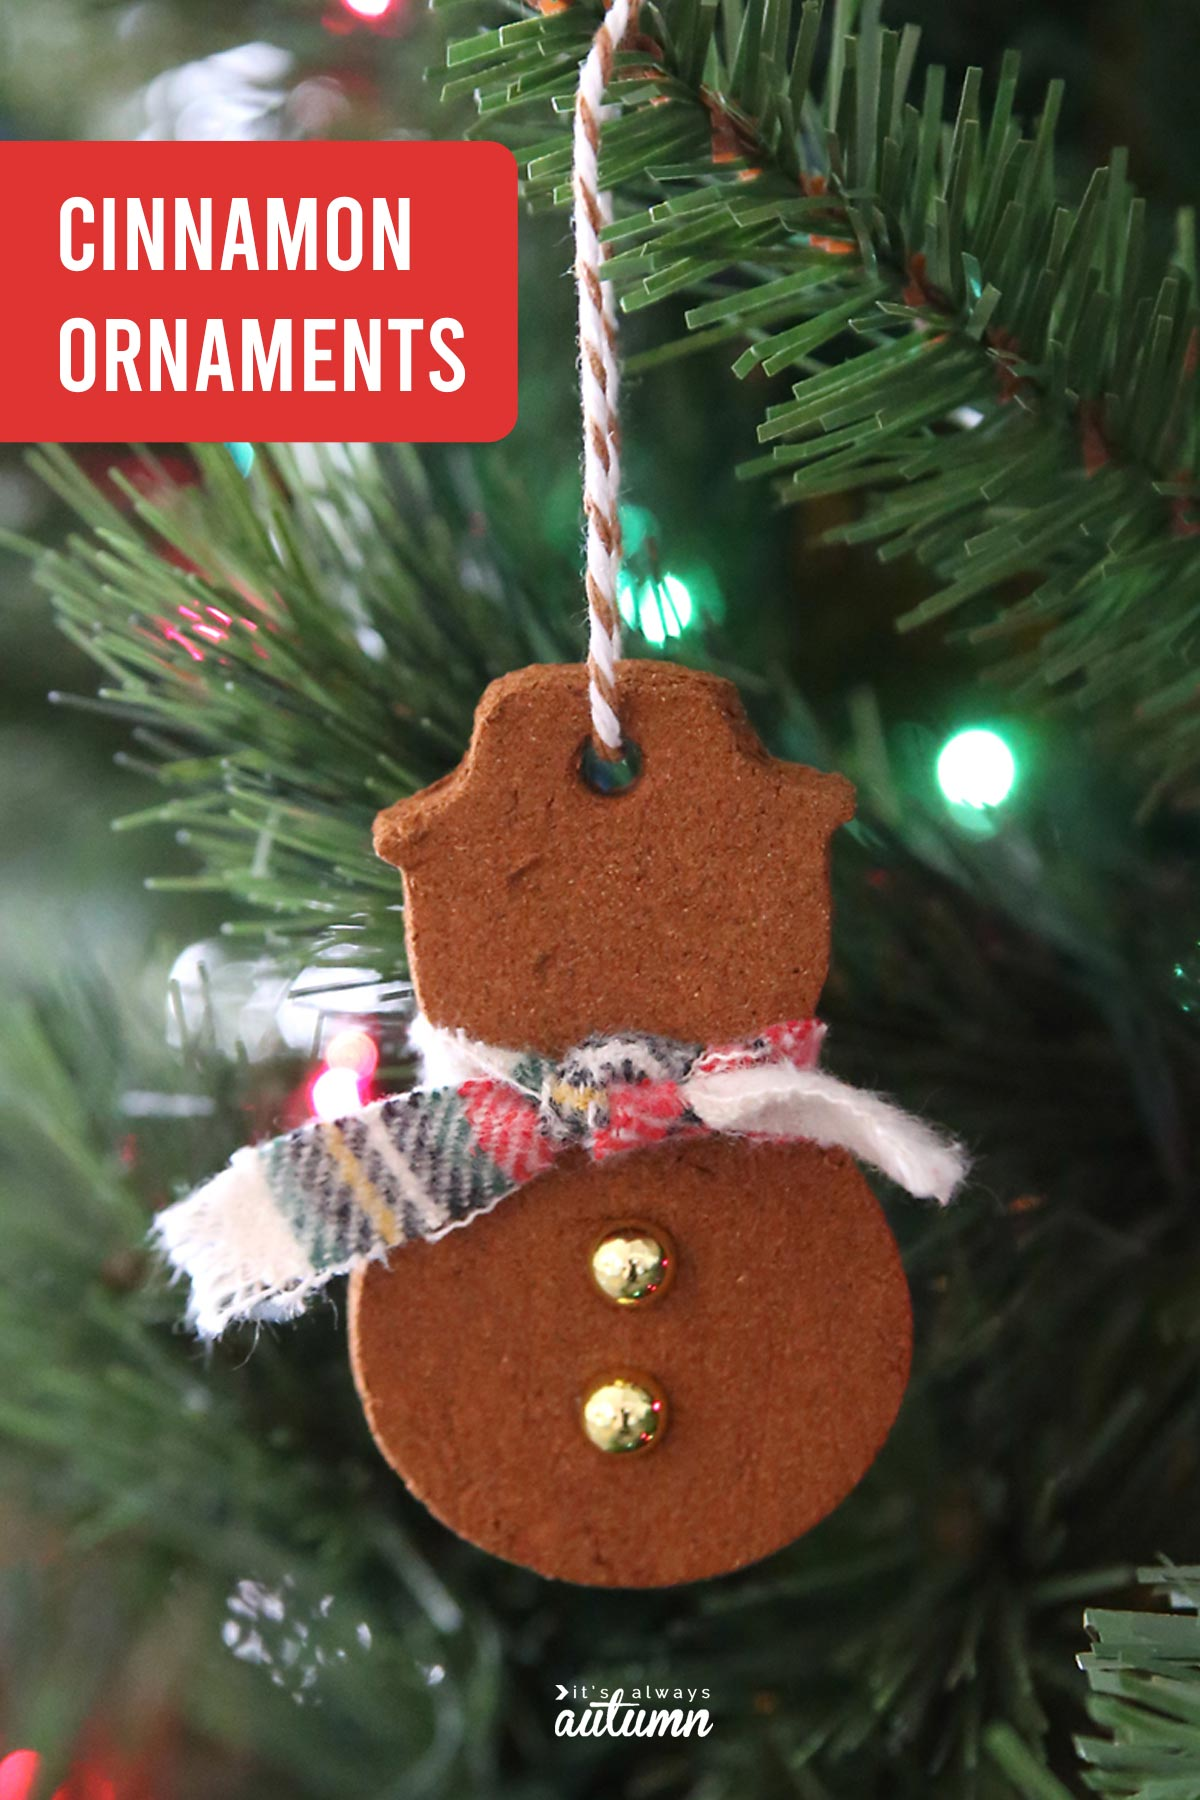 Homemade cinnamon ornament in the shape of a snowman hanging on a Christmas tree